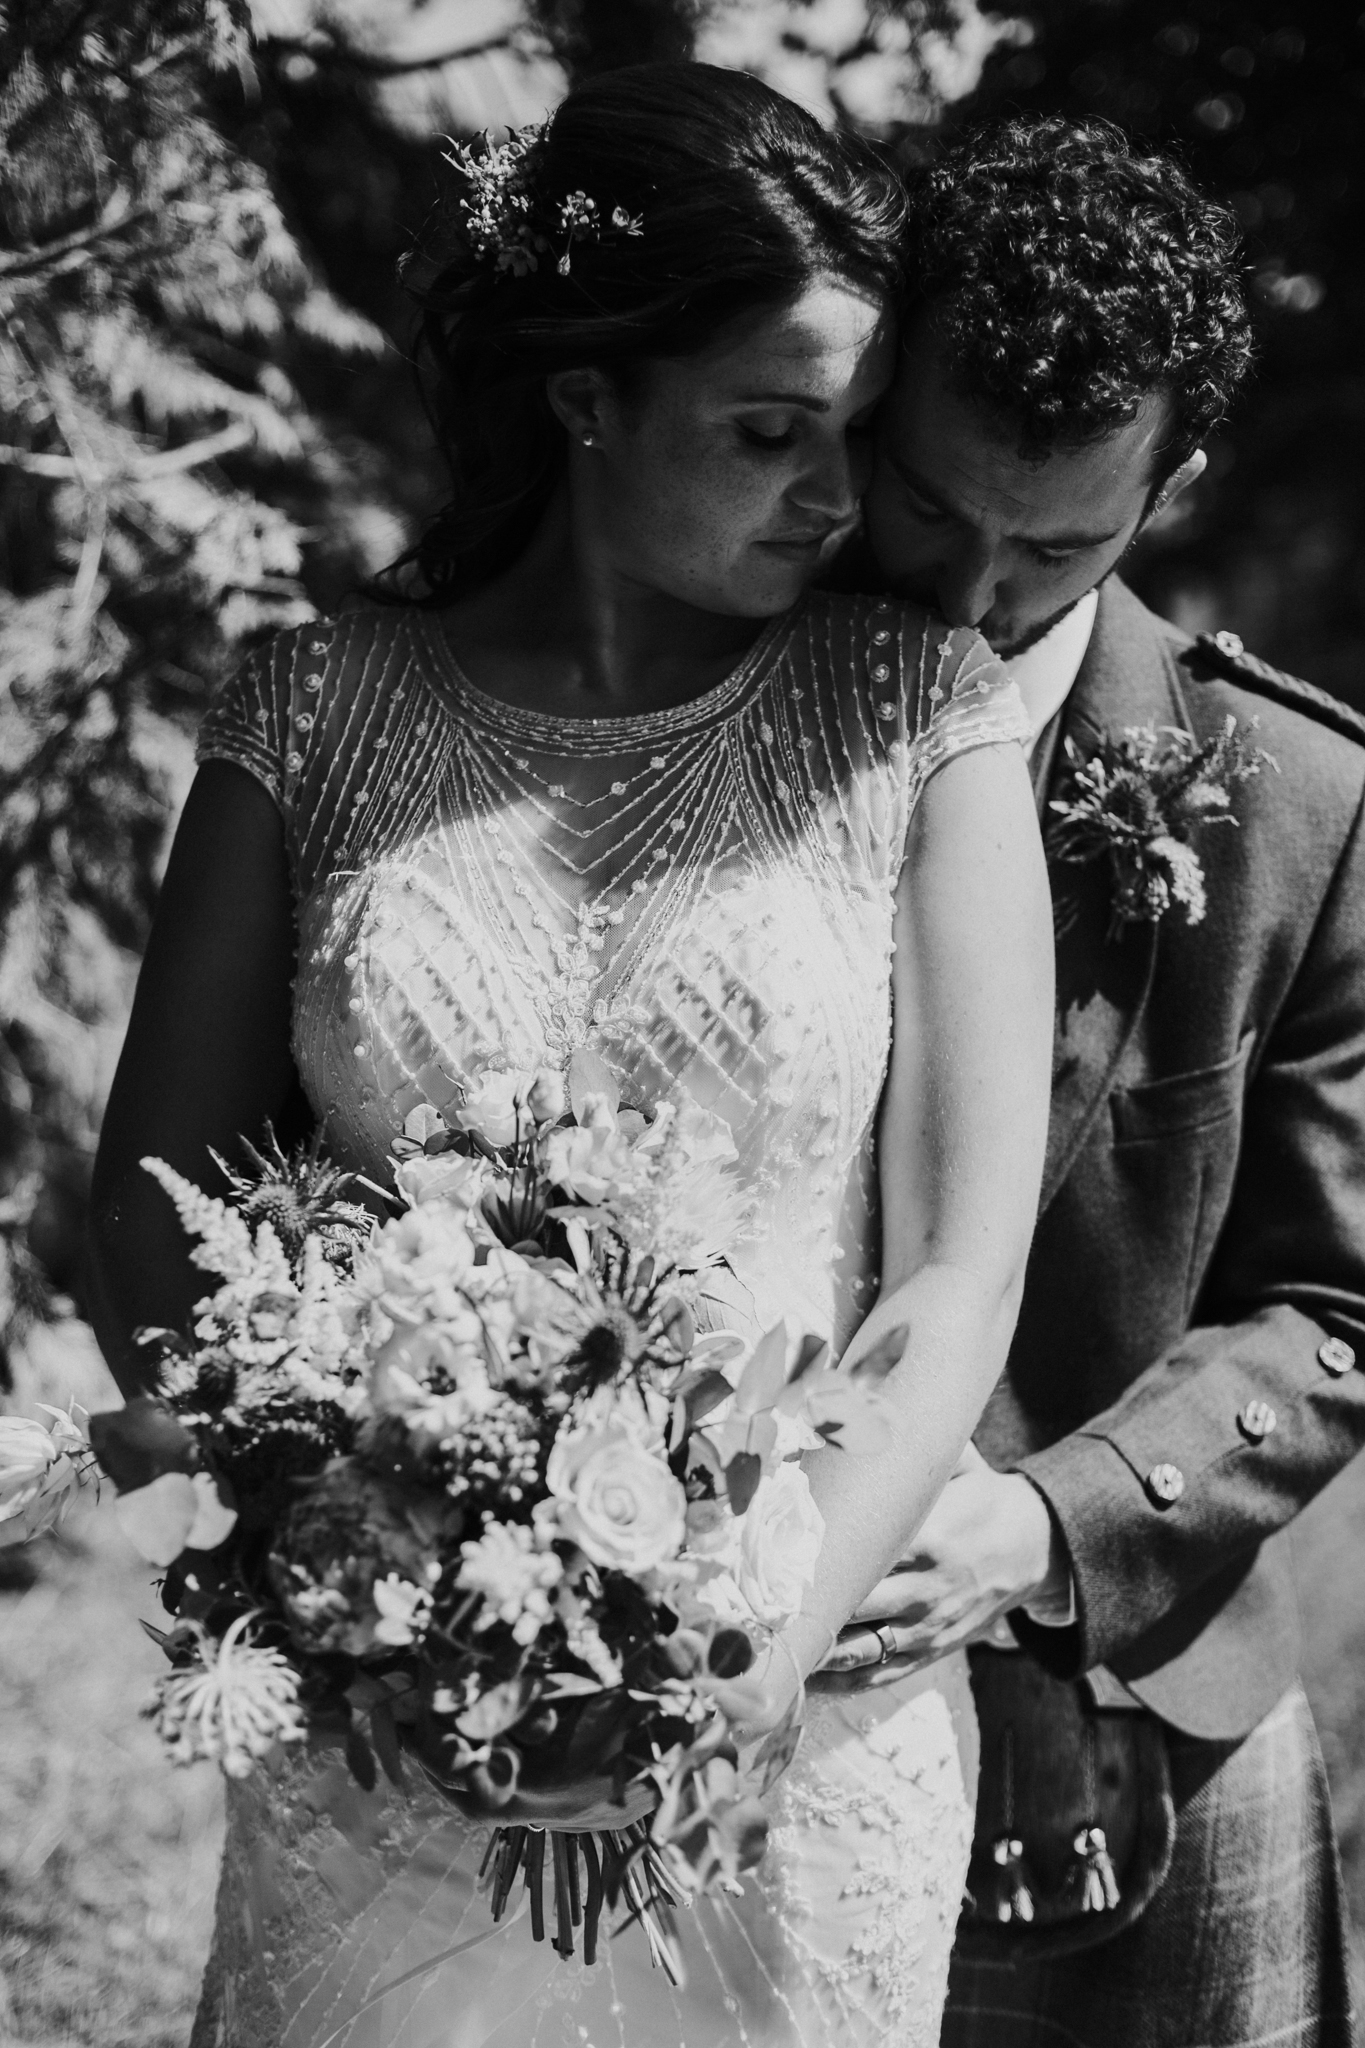 Black and white close up portrait of the newlyweds